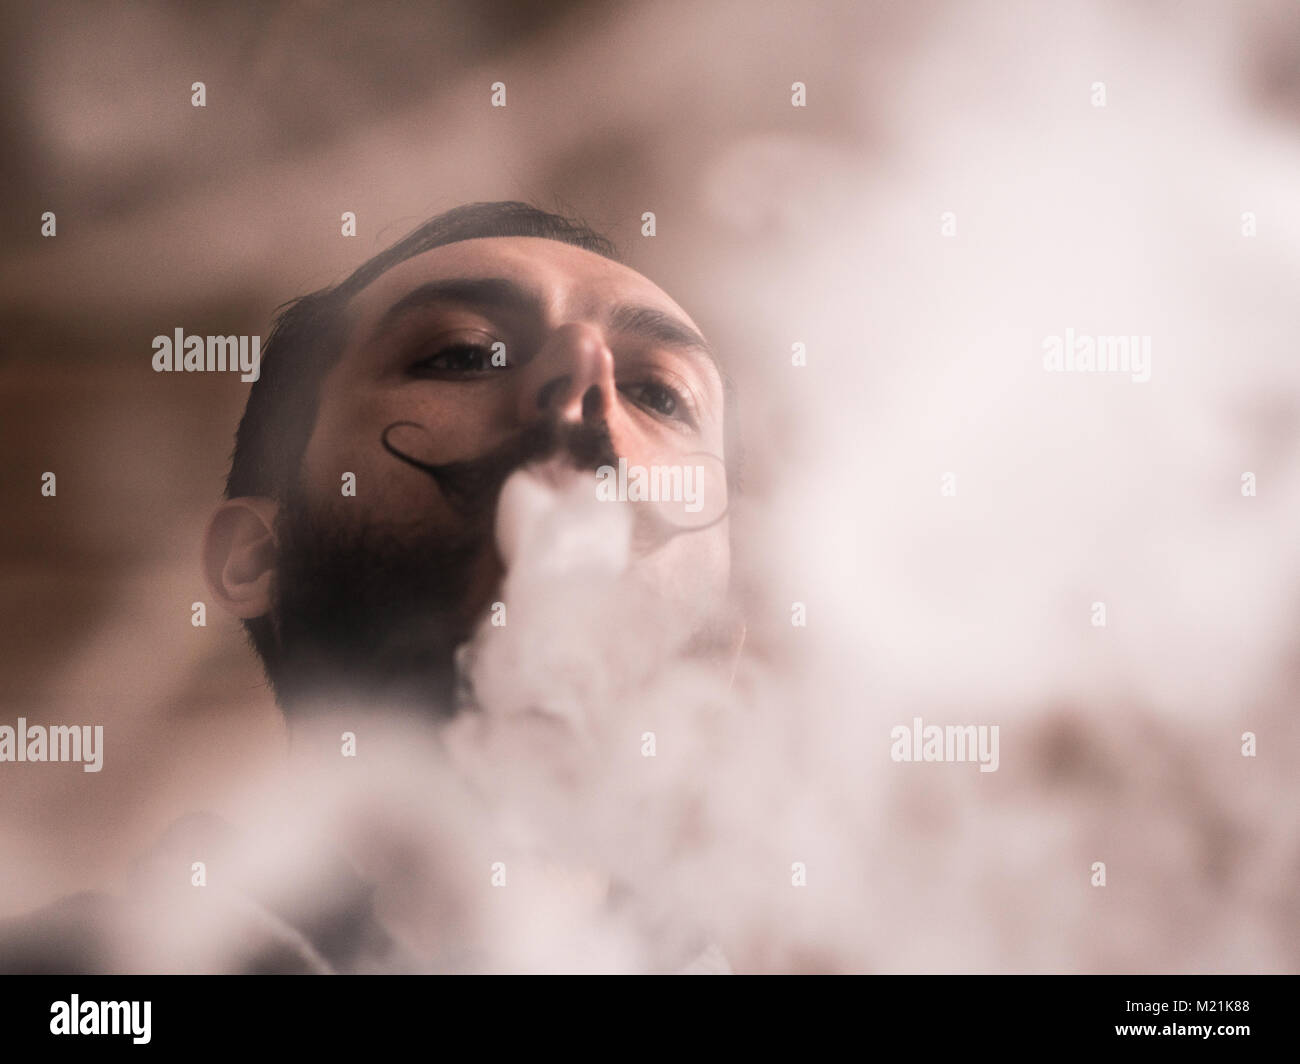 Man with Beard and Mustages Vaping an Electronic Cigarette. Vaper Hipster Smoke Vaporizer and Exhals Tight Smoke. - Stock Image